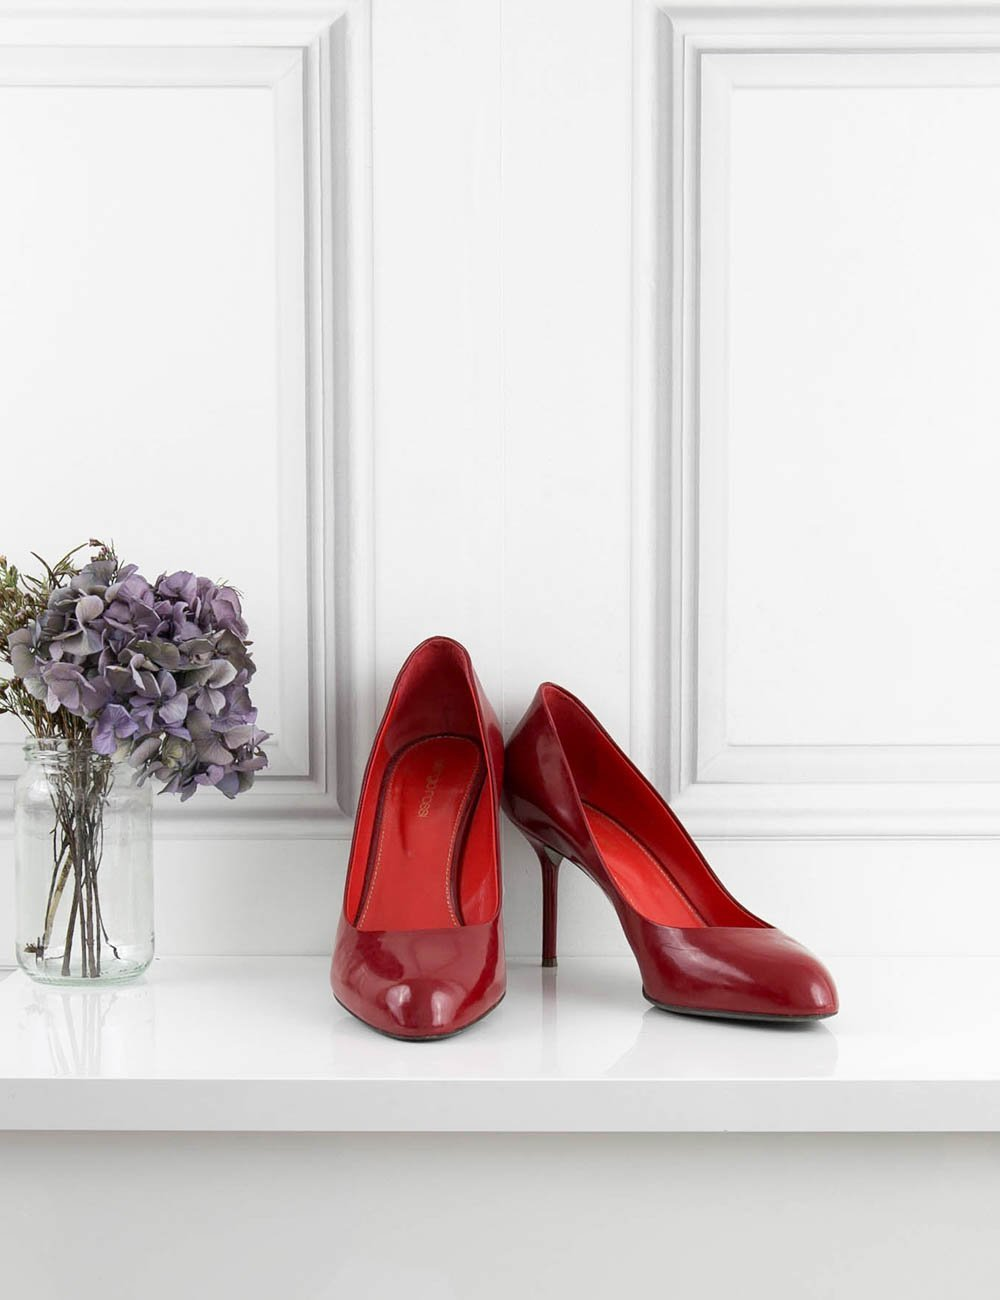 SERGIO ROSSI SHOES 'Madame' classic patent pump